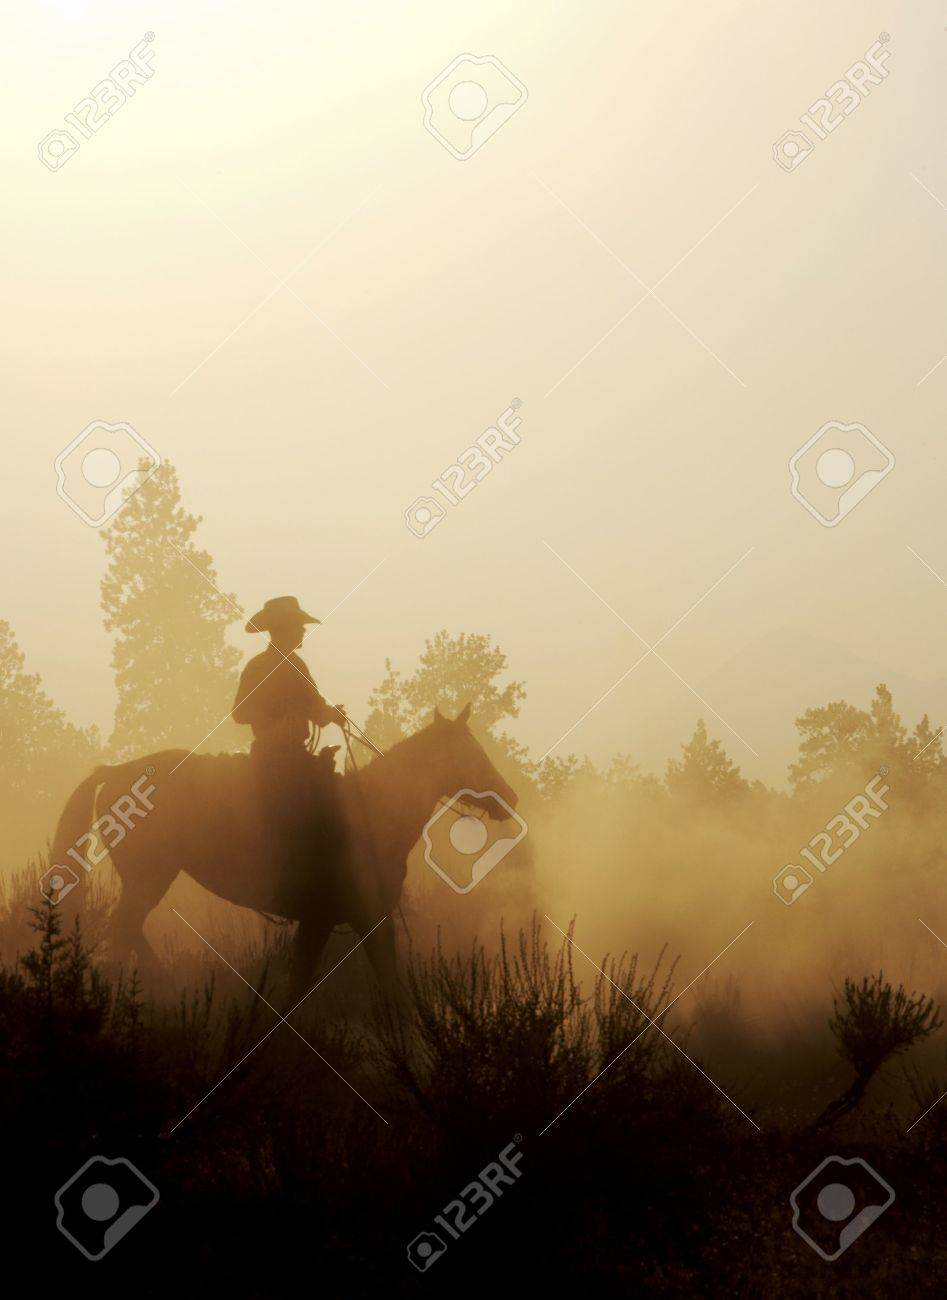 silhouette of a cowboy in the west Stock Photo - 1132123